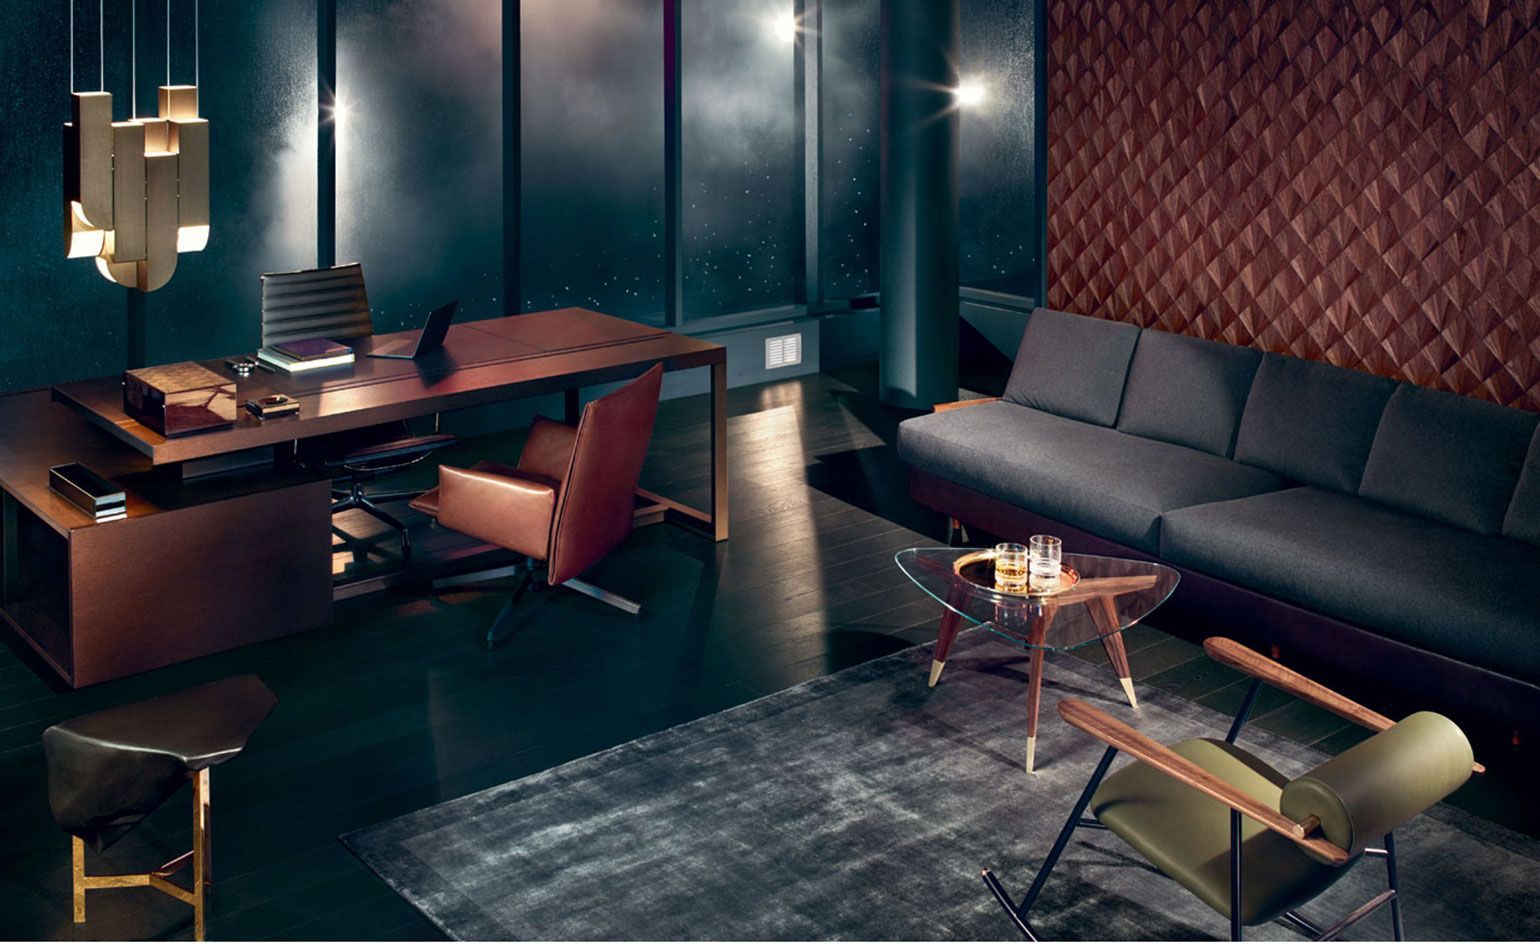 Design | Wallpaper magazine, Office furniture and Recliner